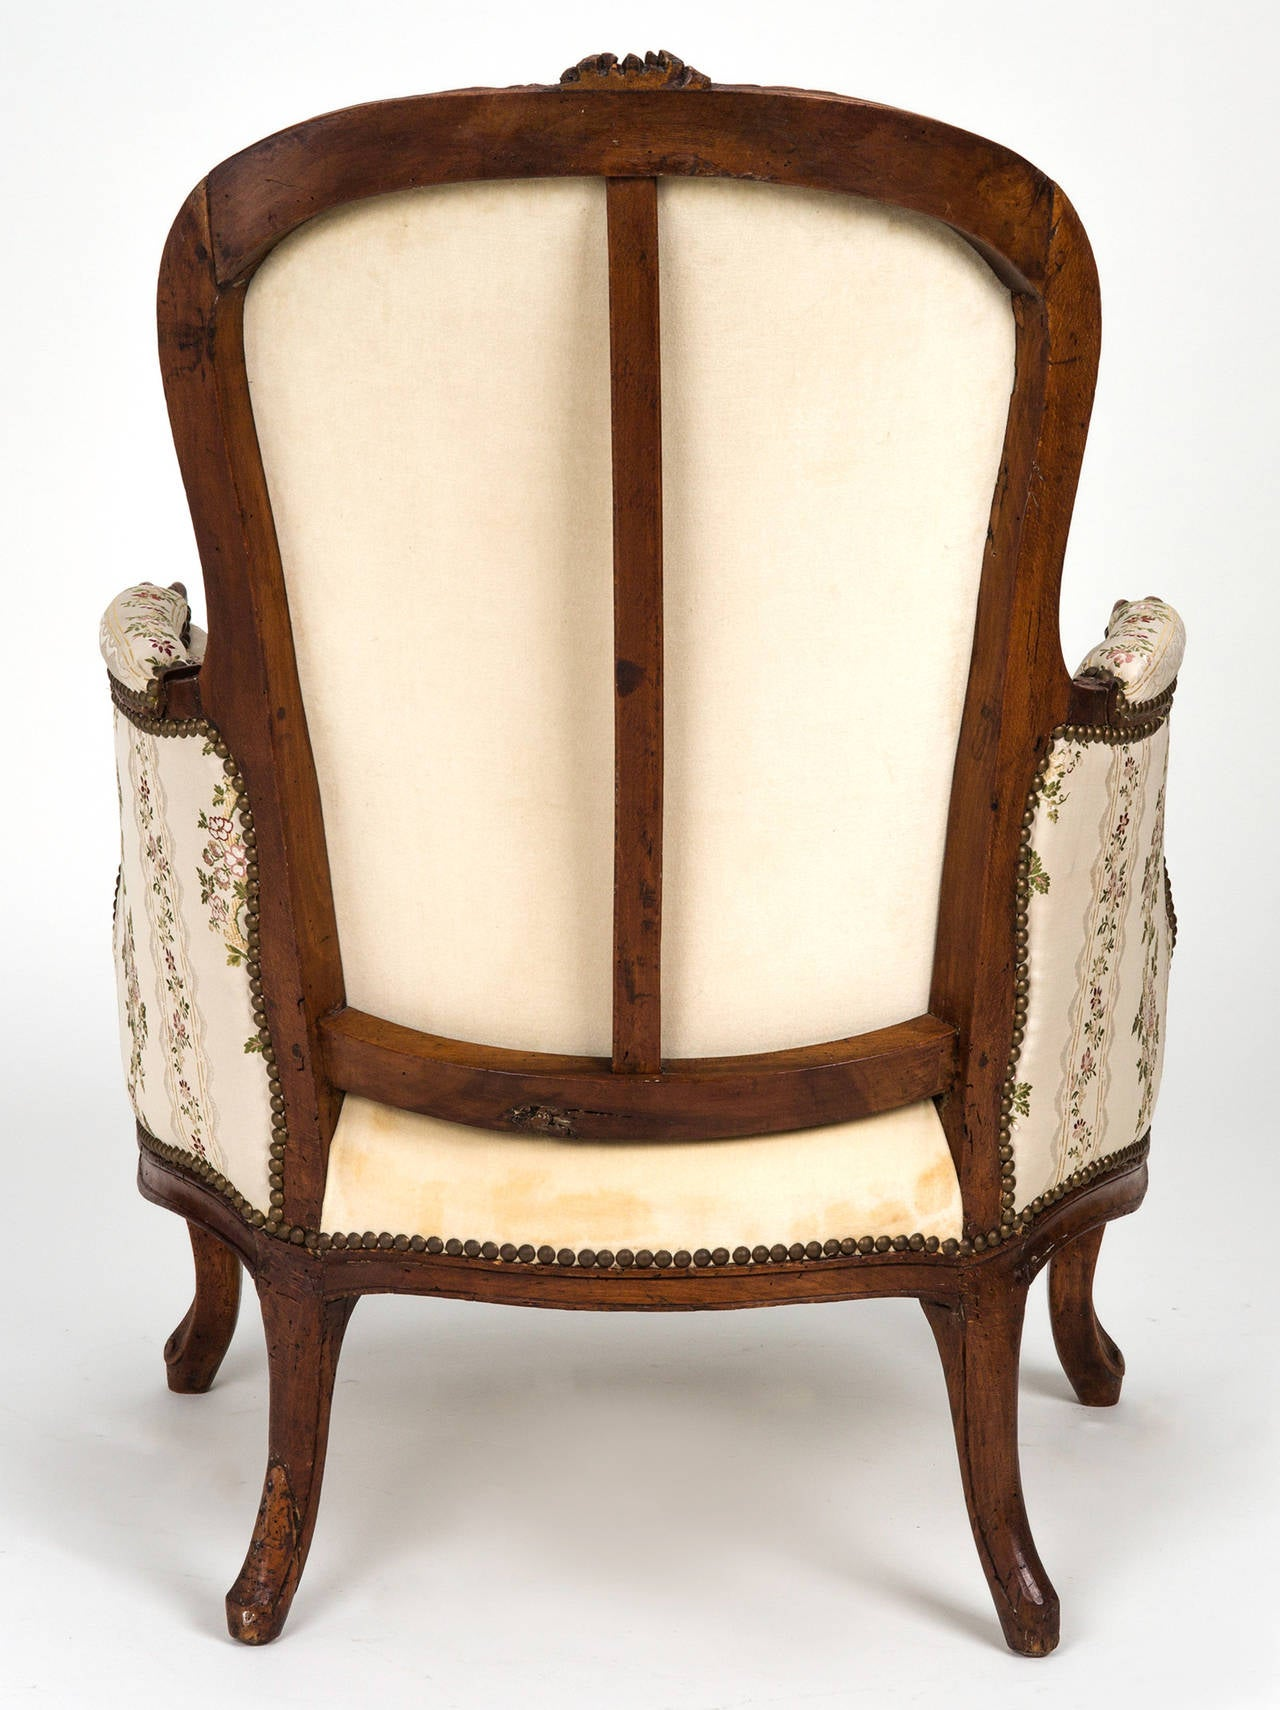 Louis XV Chair and Ottoman Chaise Lounge For Sale at 1stdibs